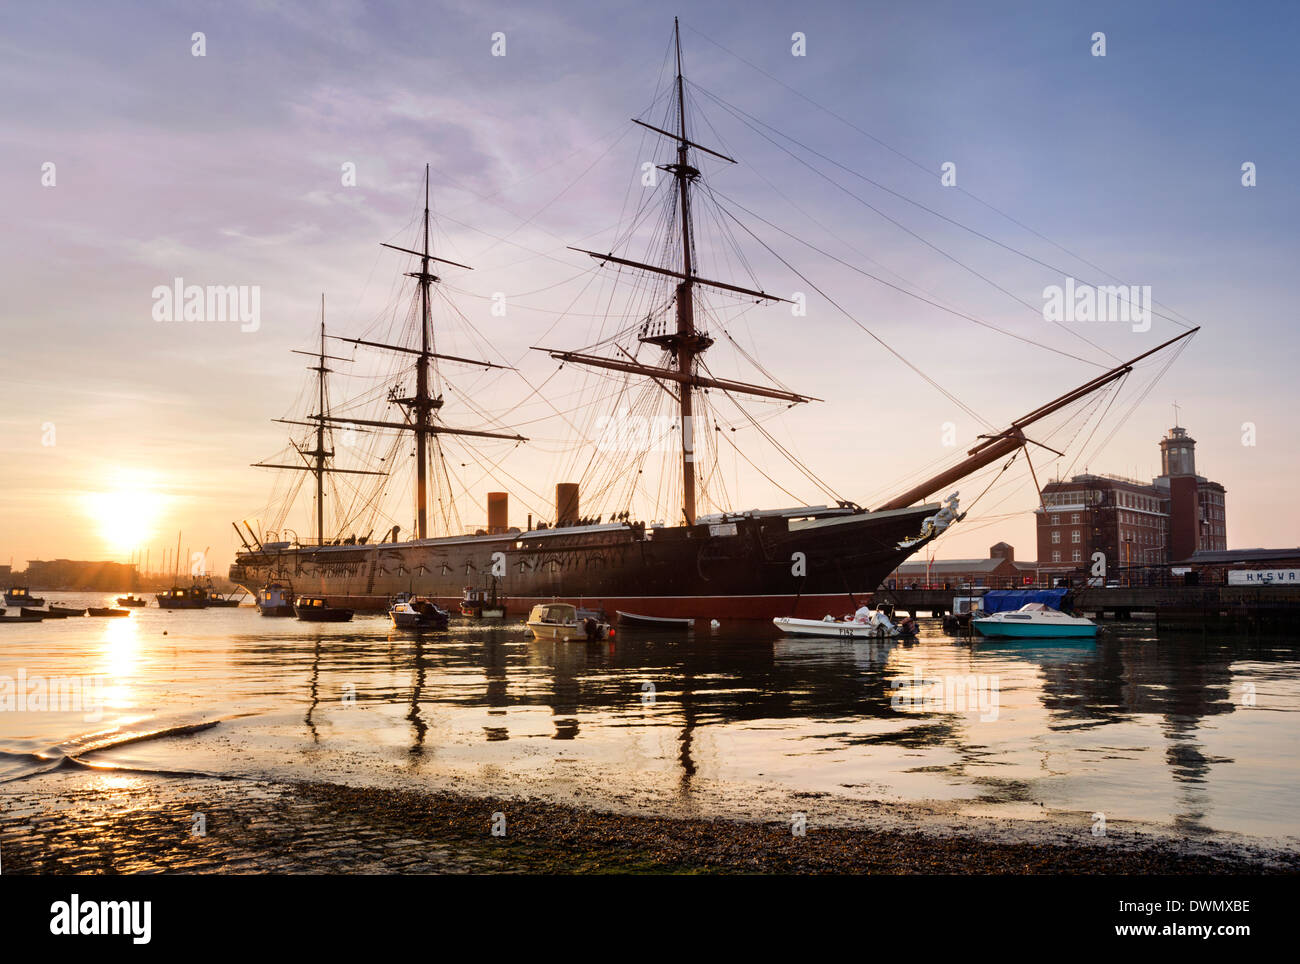 Historic warship HMS Warrior seen at sunset, moored in Portsmouth Harbour, Hampshire, UK - Stock Image